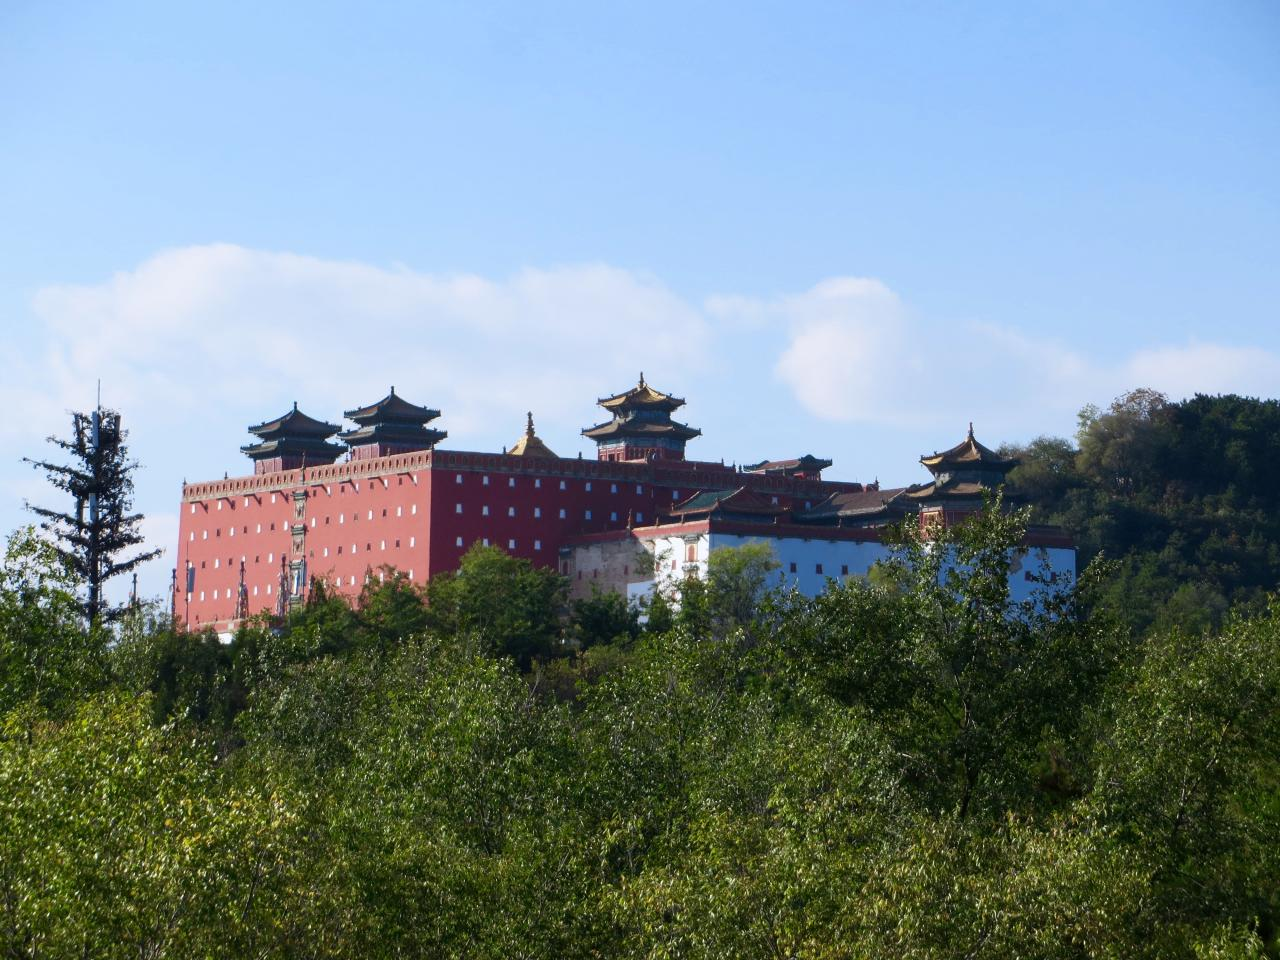 Just about 3 hours drive from Beijing, is Chengde. Known as the summer escape for generations of Qing emperors. The mountain city has important cultural and historic significance. It has been the plac